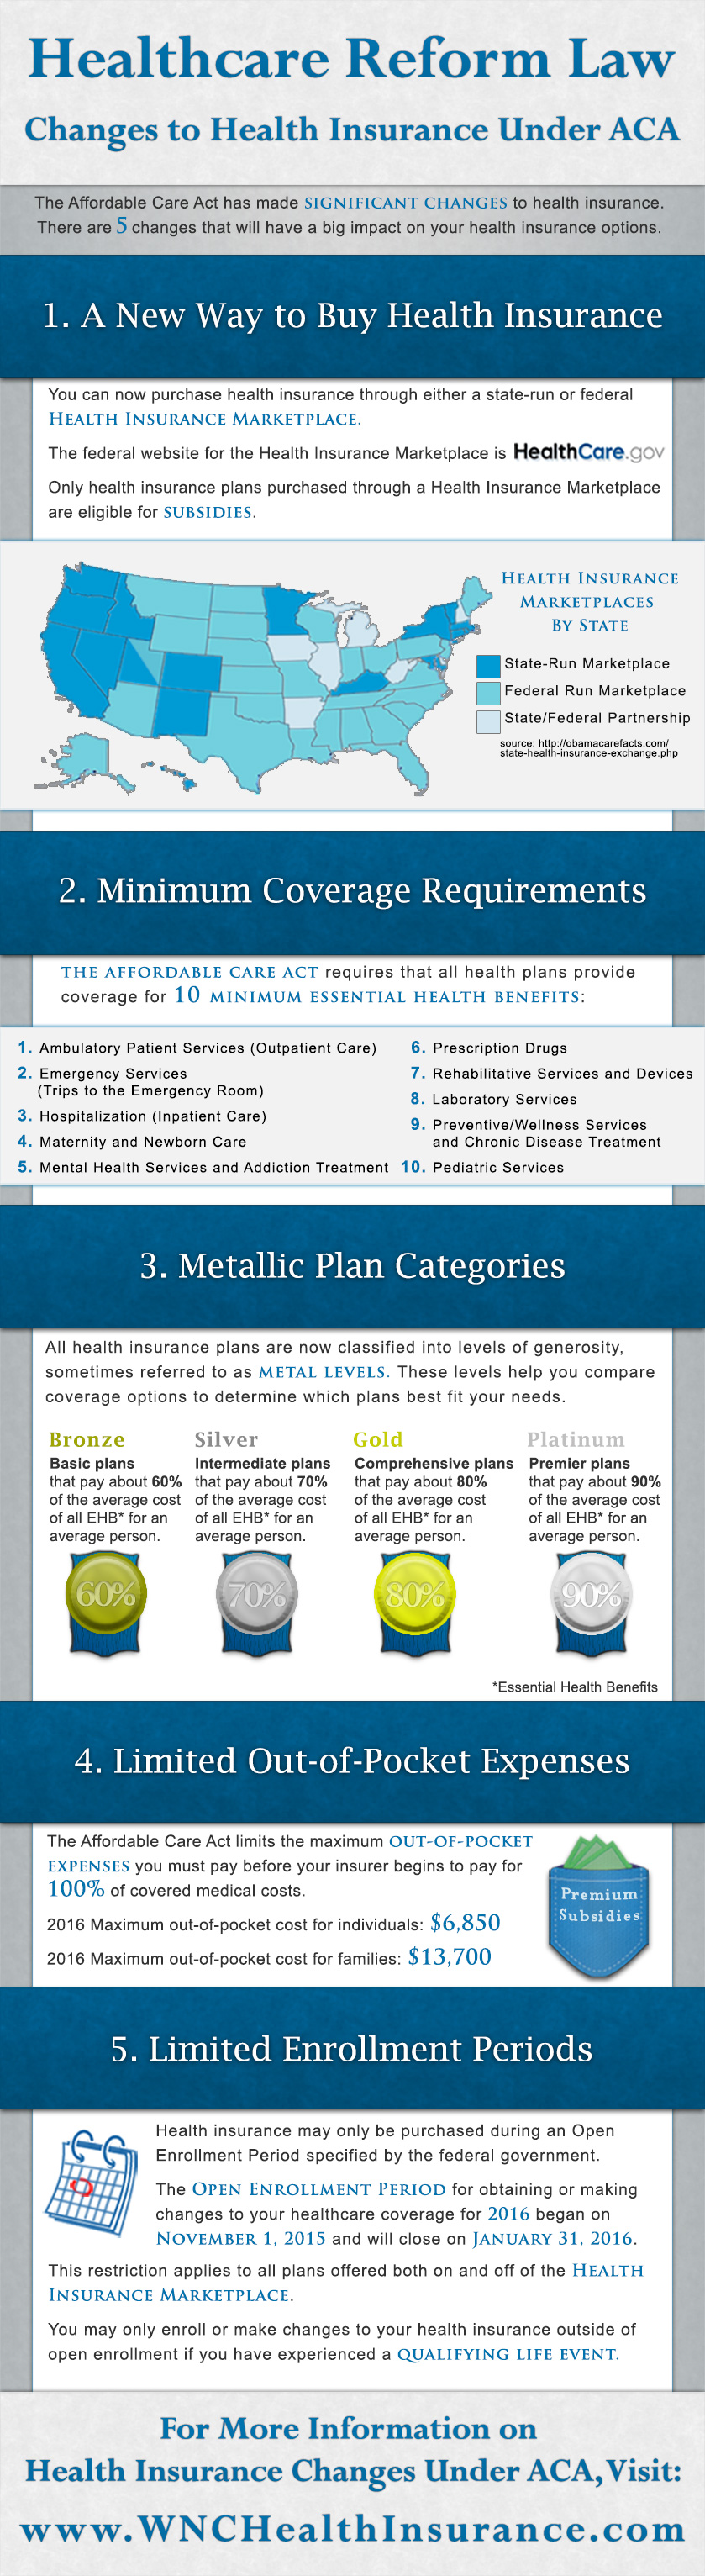 Health Care Reform Infographic